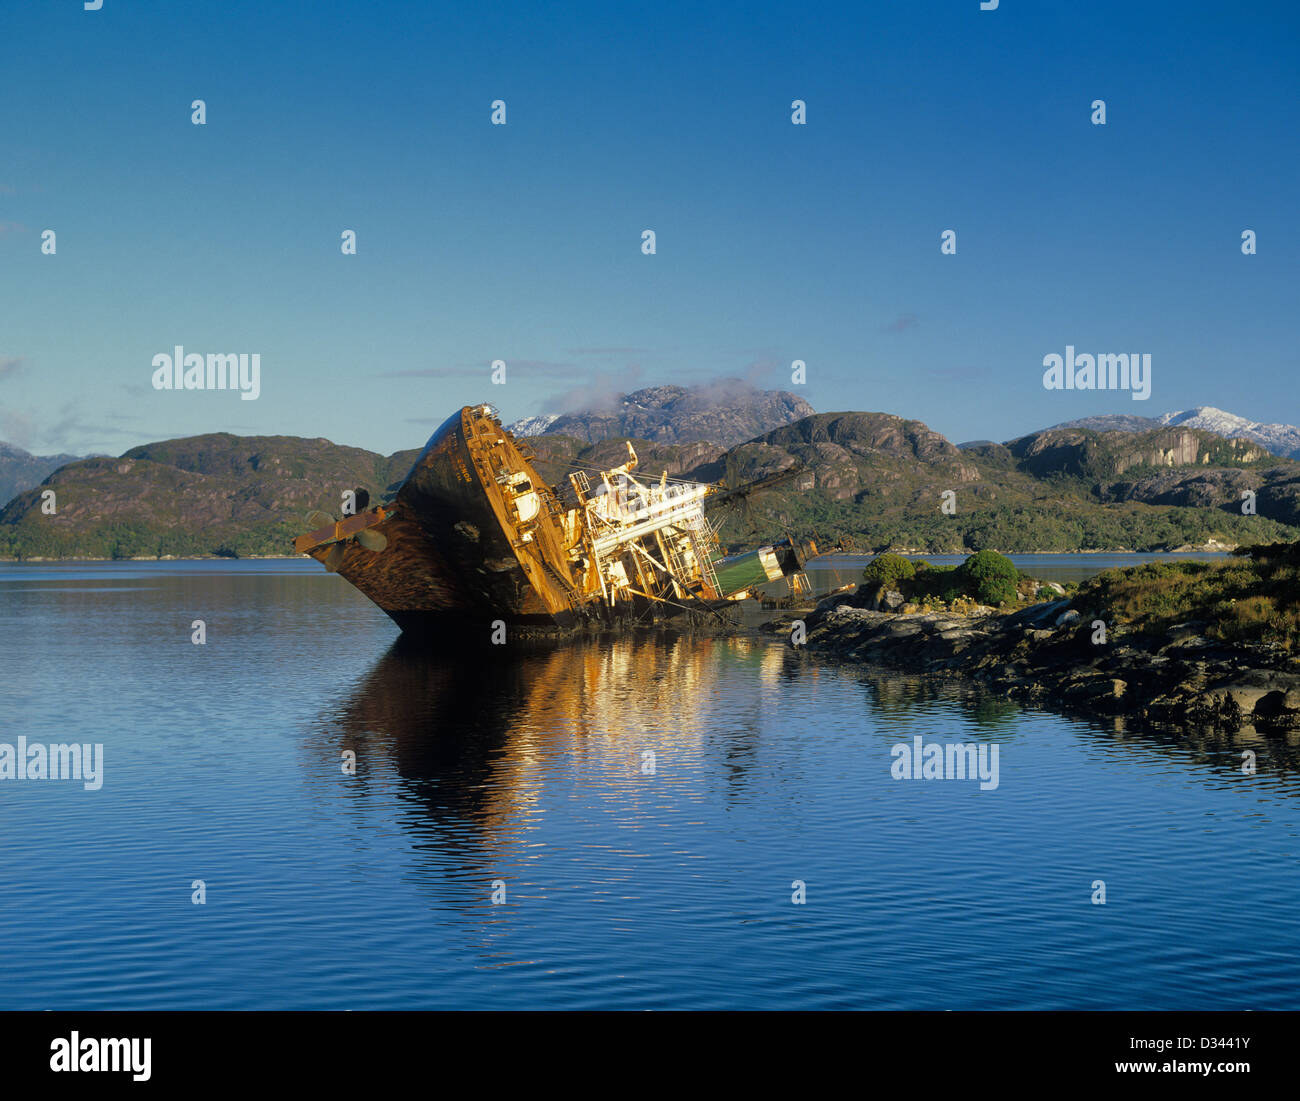 Chile, Region Magallanes, Archipelagic Chile, Canal Mayne, Shoal Pass, wreck of the 'Santa Eleonor'. - Stock Image